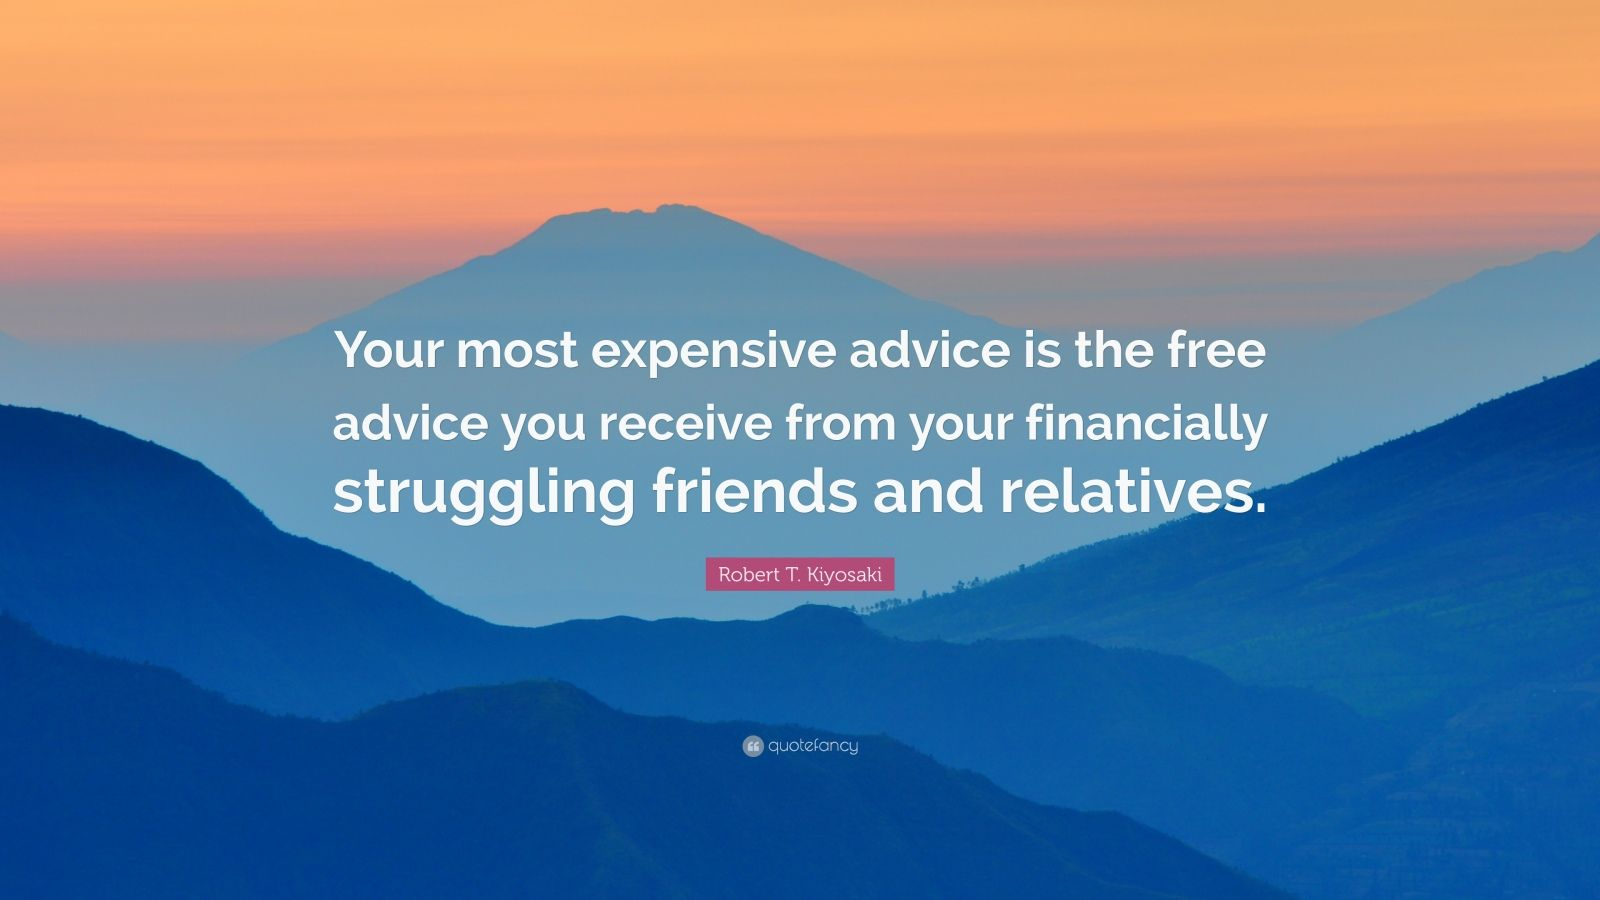 """Robert T. Kiyosaki Quote: """"Your most expensive advice is the free advice you receive from your financially struggling friends and relatives."""""""